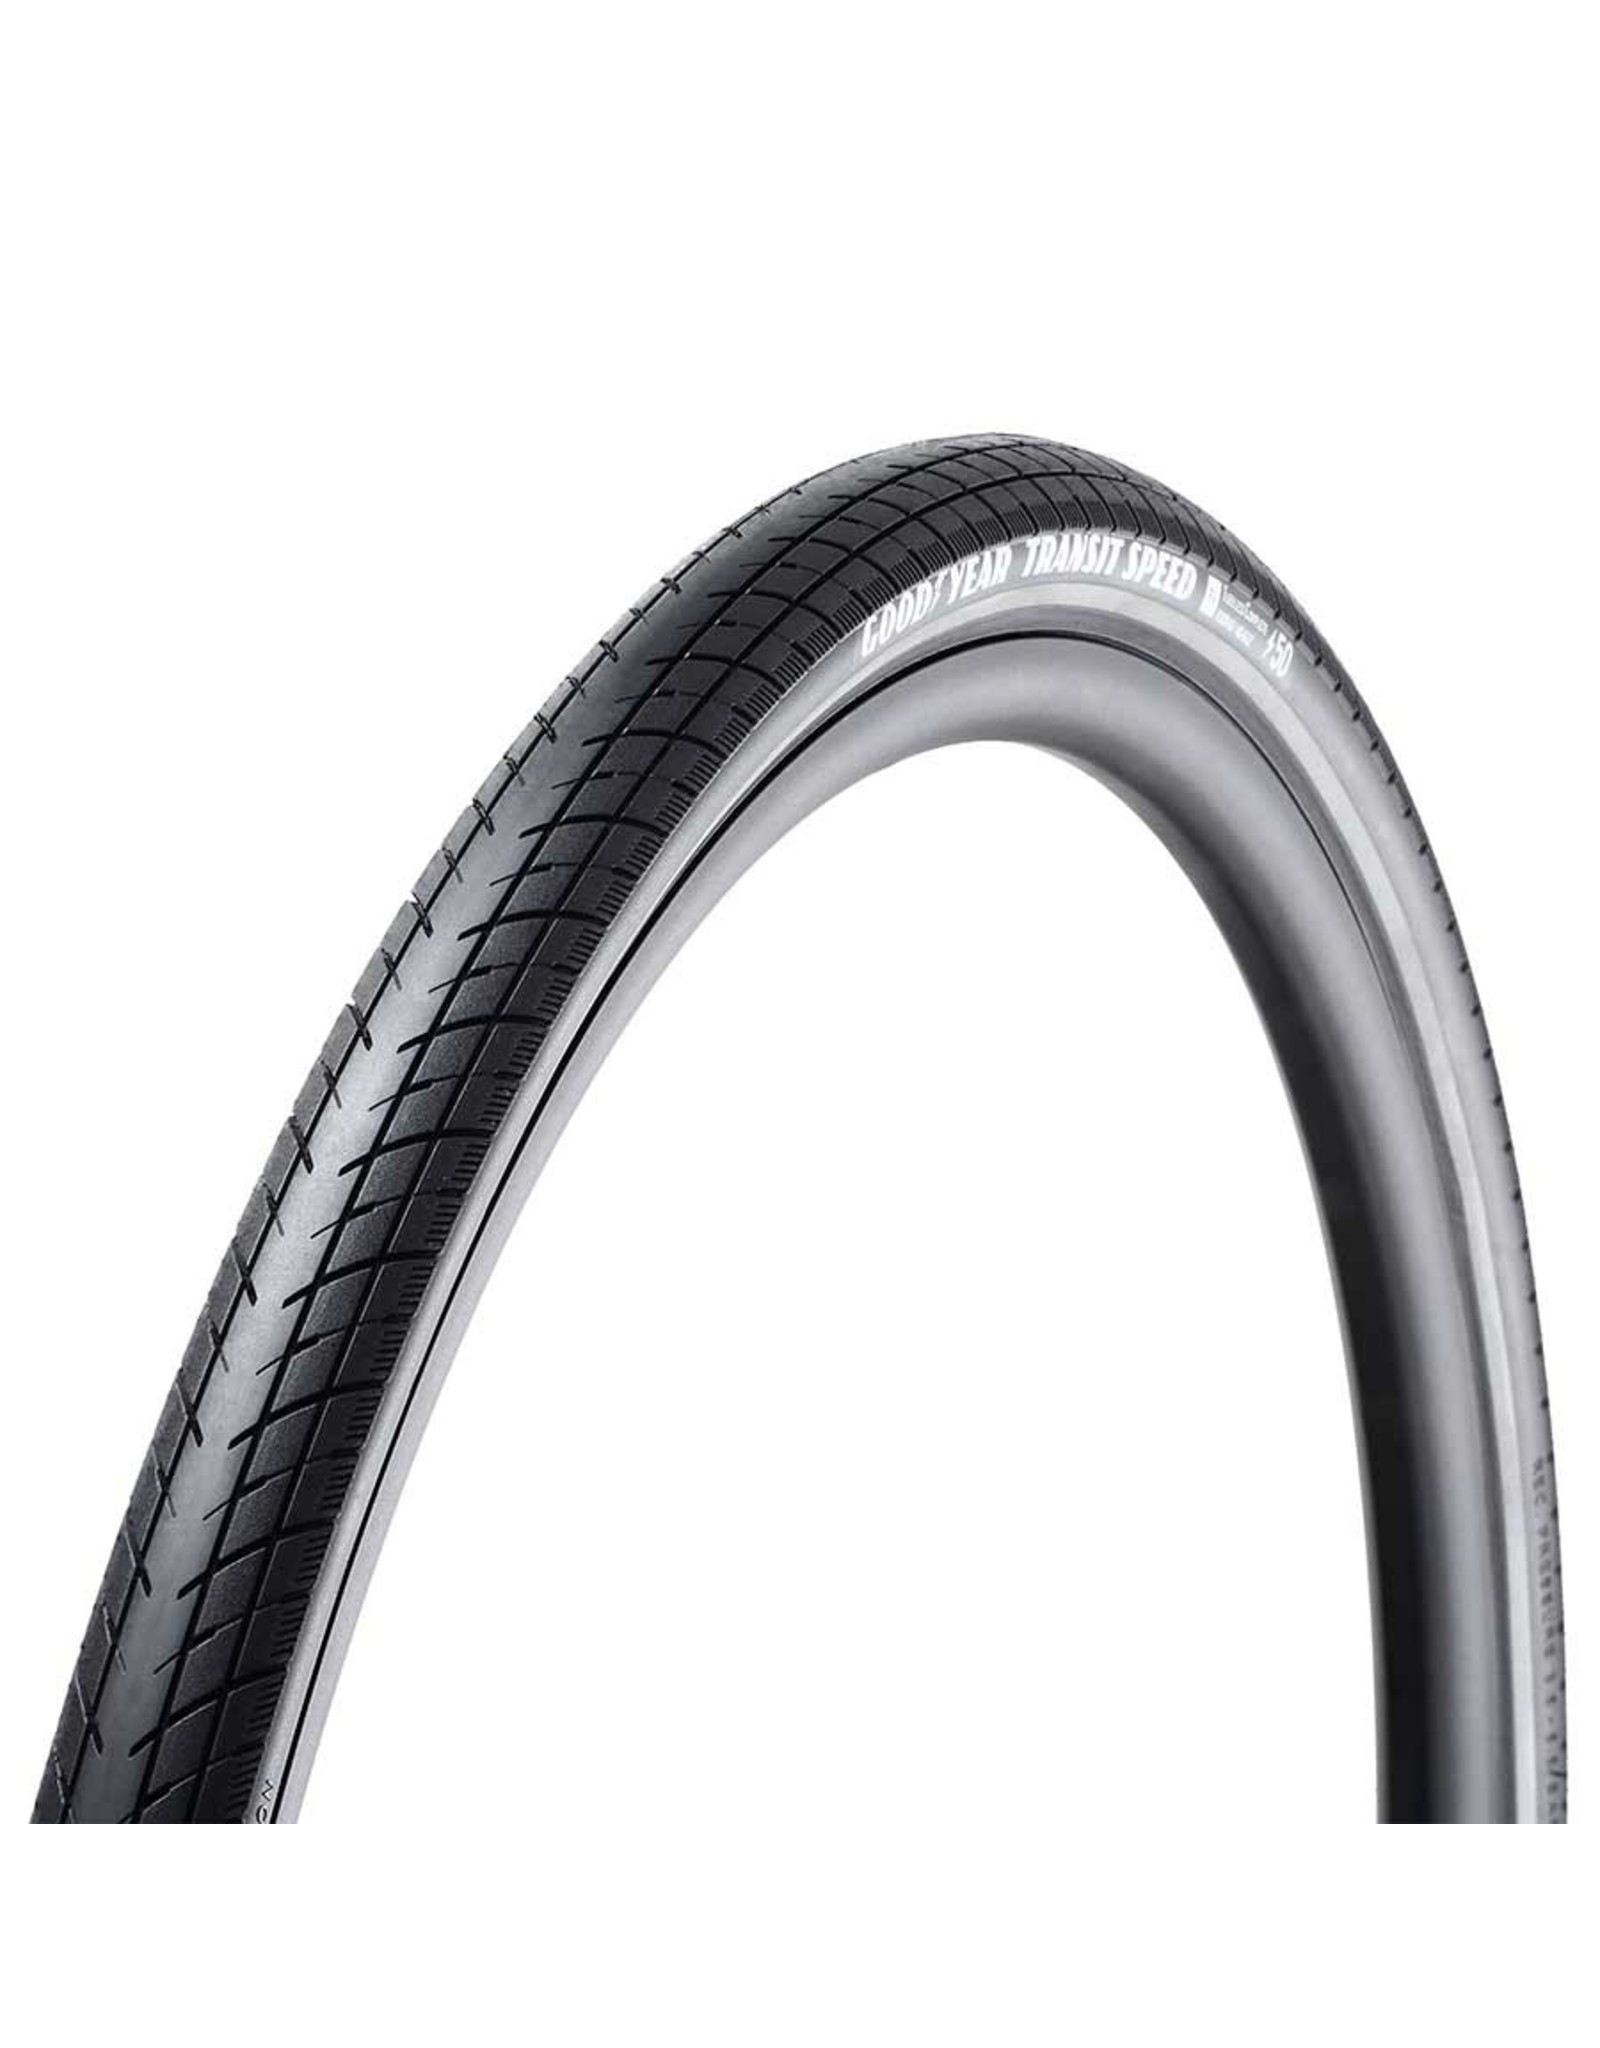 Goodyear Goodyear, Transit Speed, Tire, 700x40C, Wire, Clincher, Dynamic:Silica4, S3: Shell, 60TPI, Black